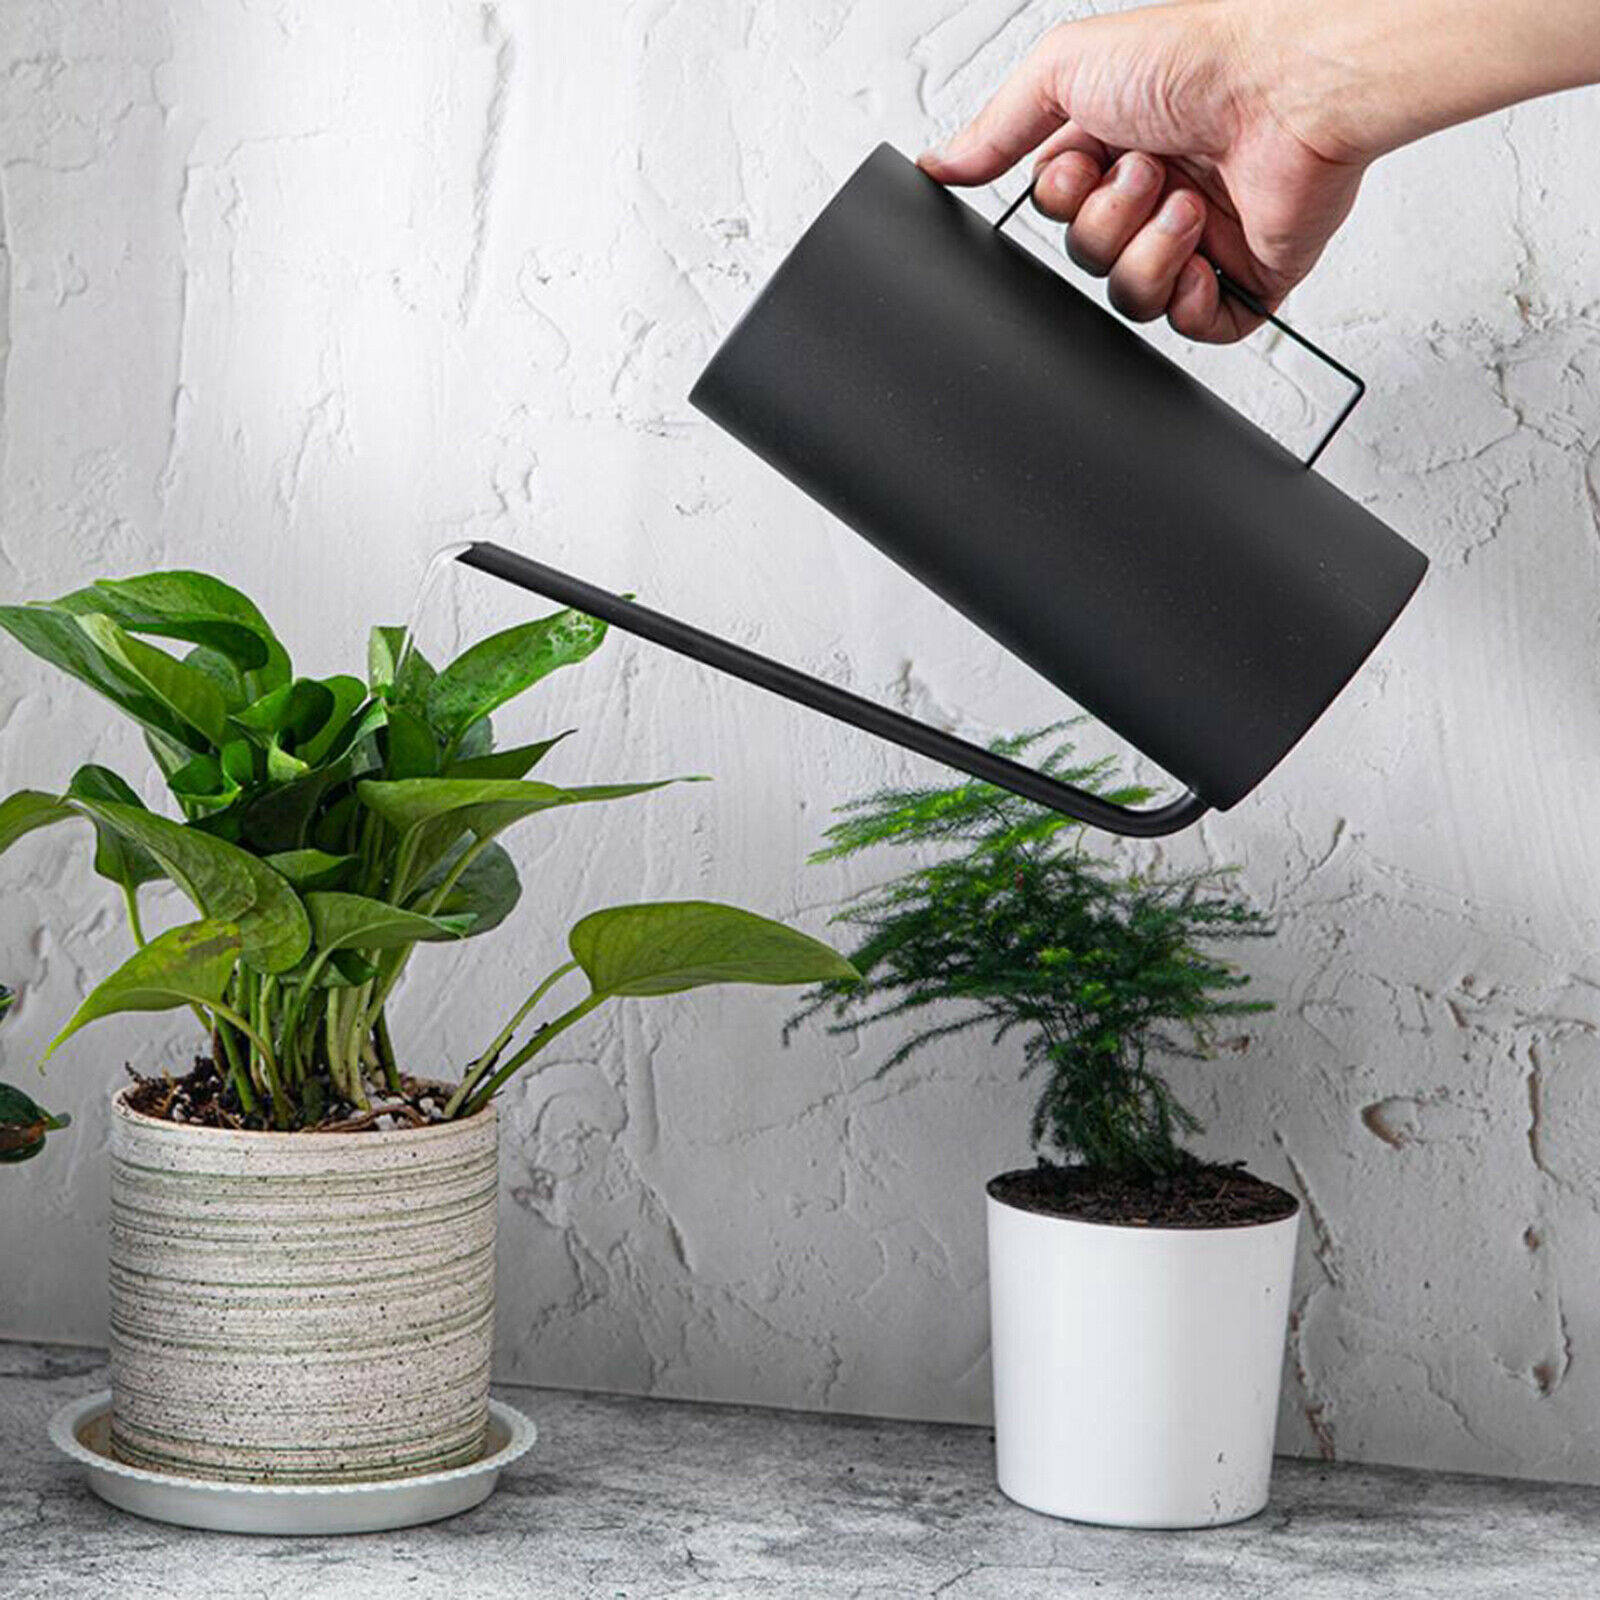 Stainless Water Can Long Spout for Patio Plants Easy-to-Clean Multi-Purpose